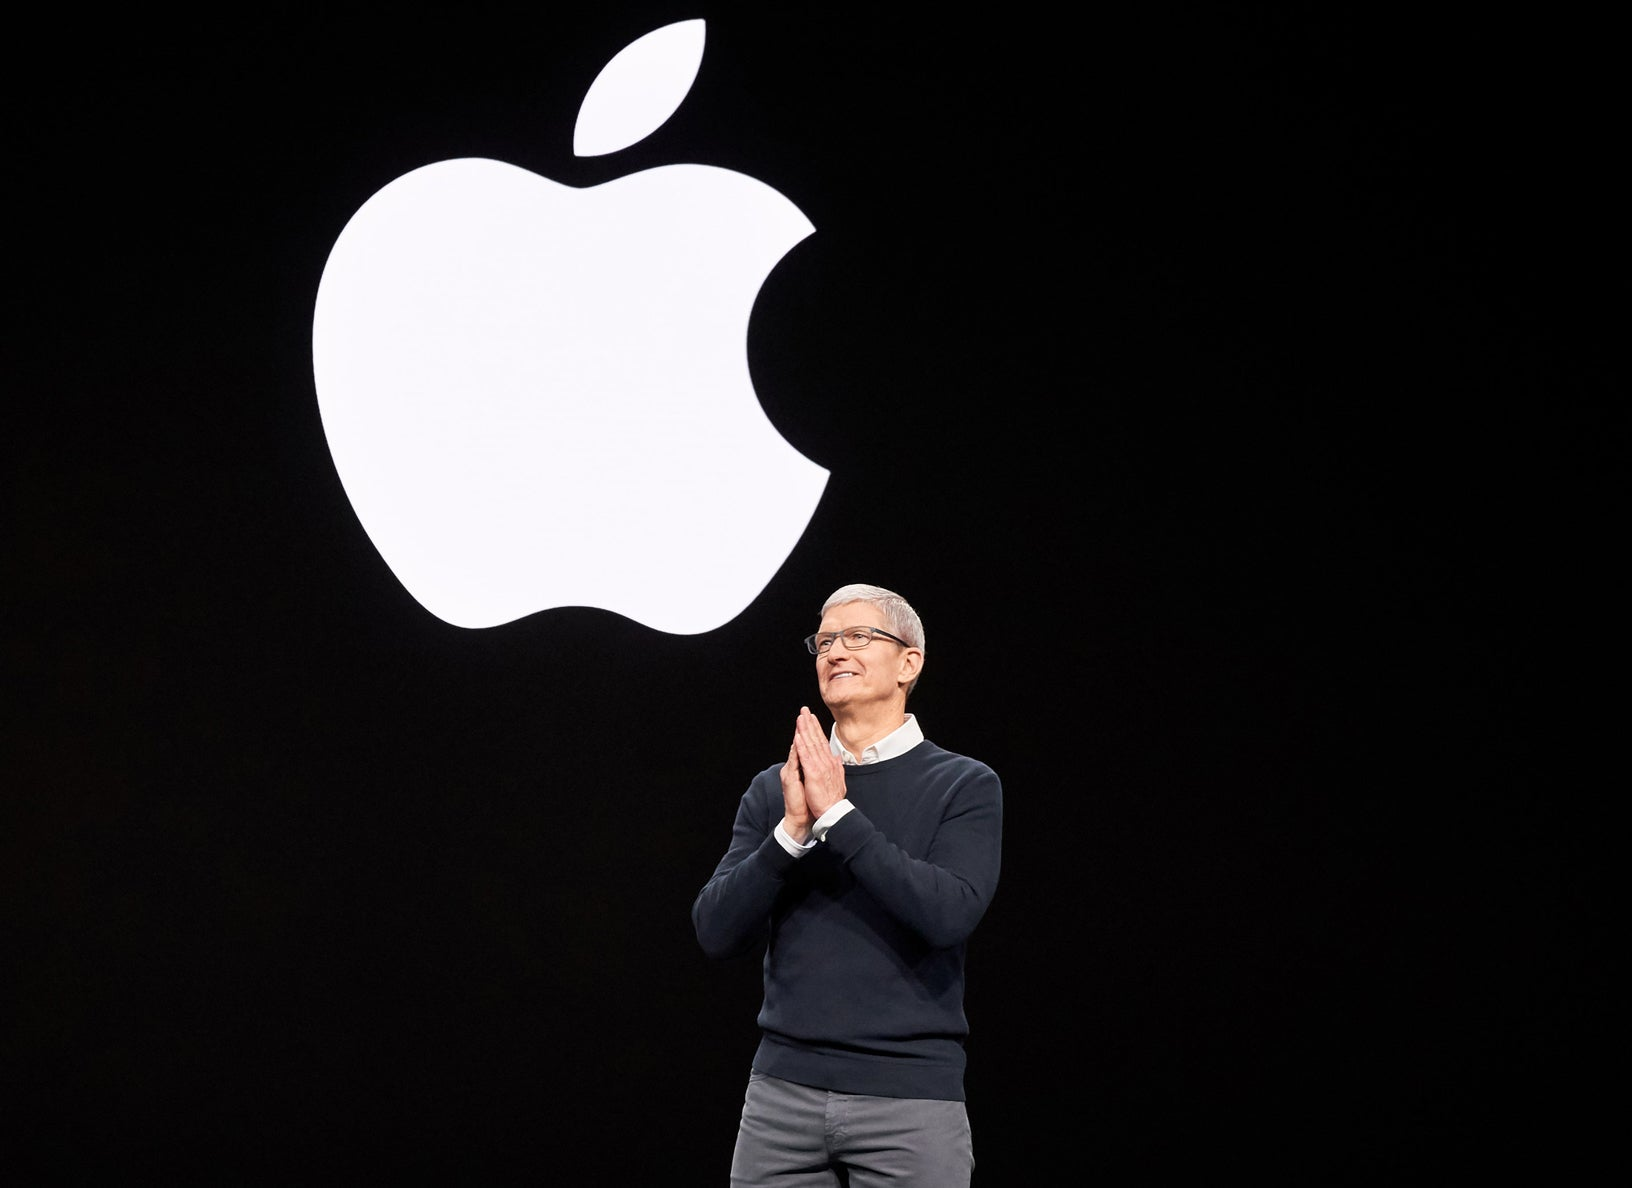 Why Apple Stock Fell Sharply Friday and Then Recovered